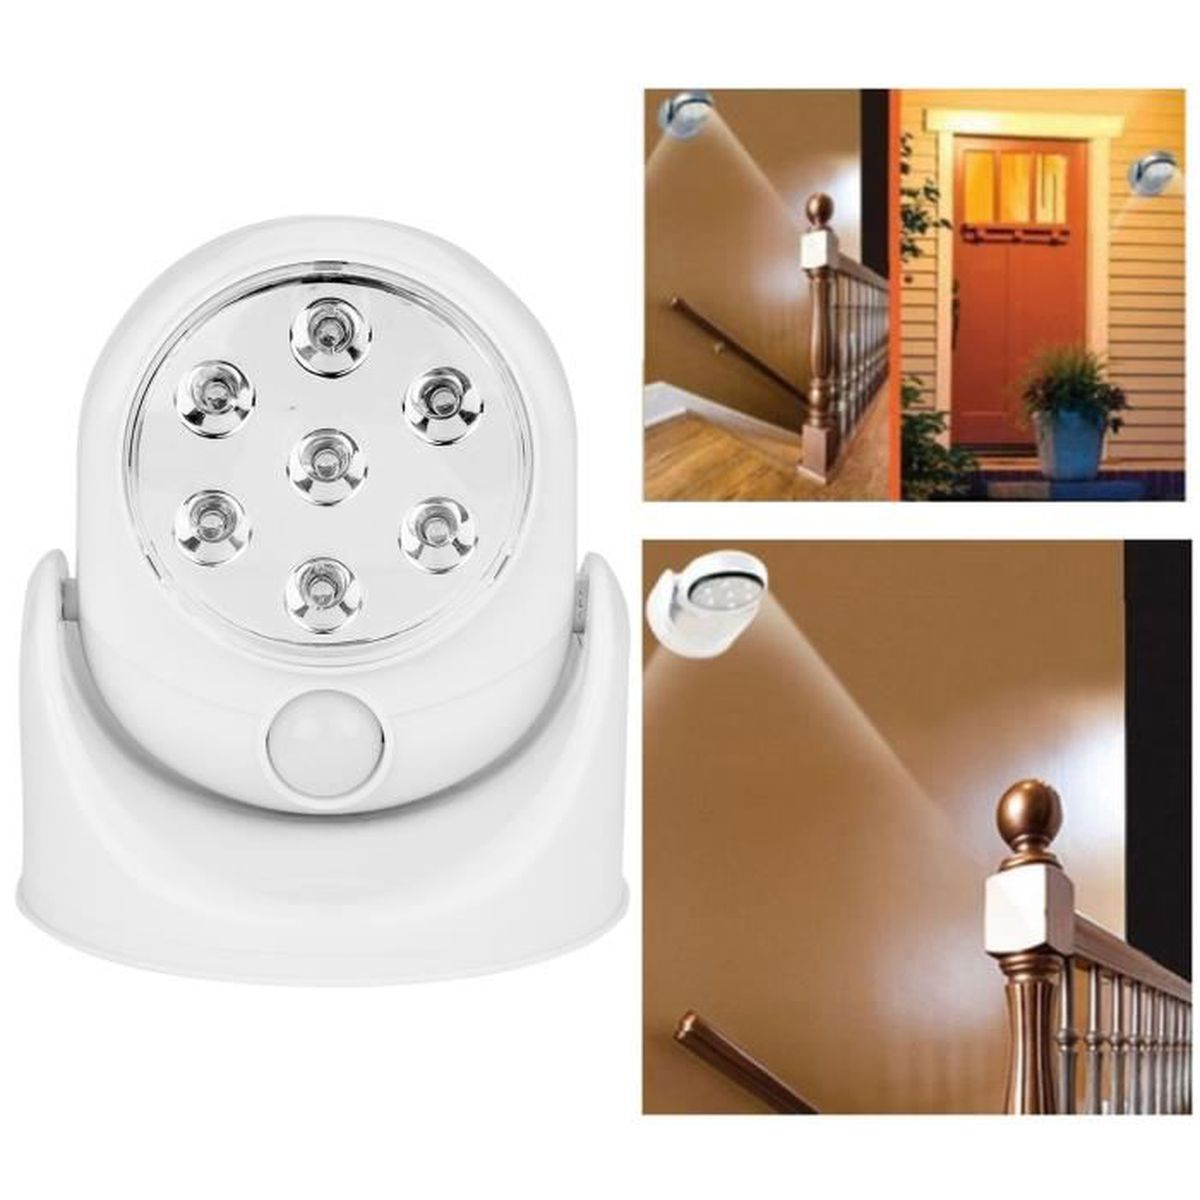 led lampe d tecteur mouvement 360 sans fil capteur patio s curit jardin mur achat vente. Black Bedroom Furniture Sets. Home Design Ideas